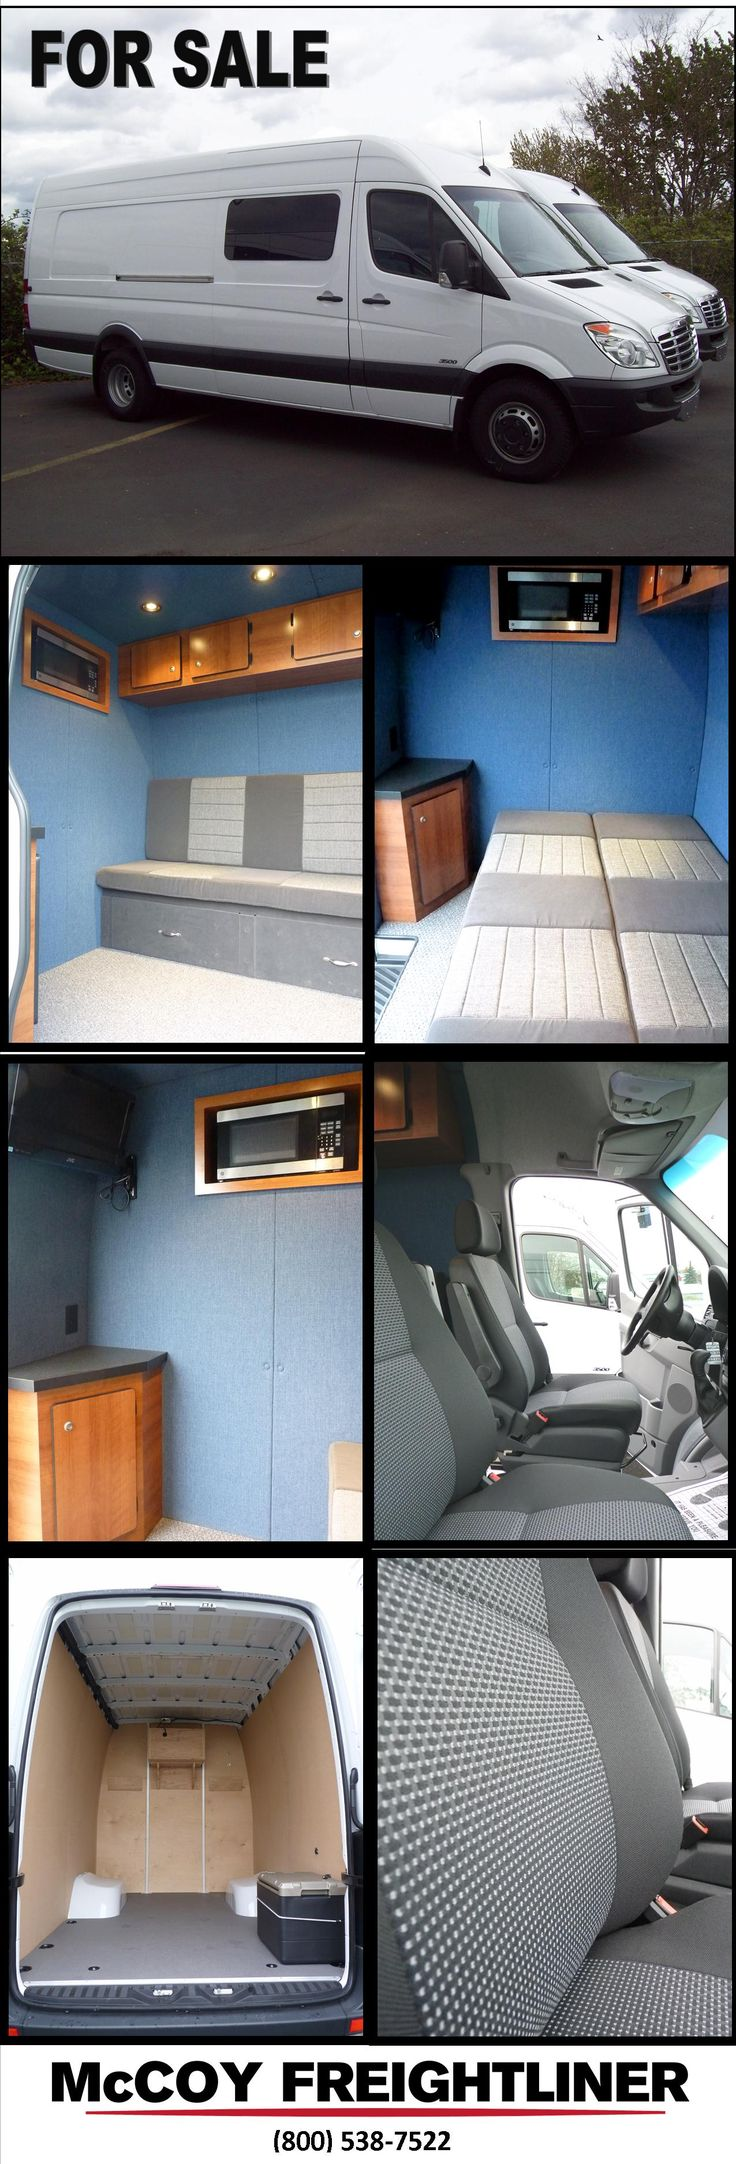 Sprinter Van for sale!  Toy Hauler, Weekend Traveler, Full Size couch to bed, near vertical walls, microwave, flat screen tv.